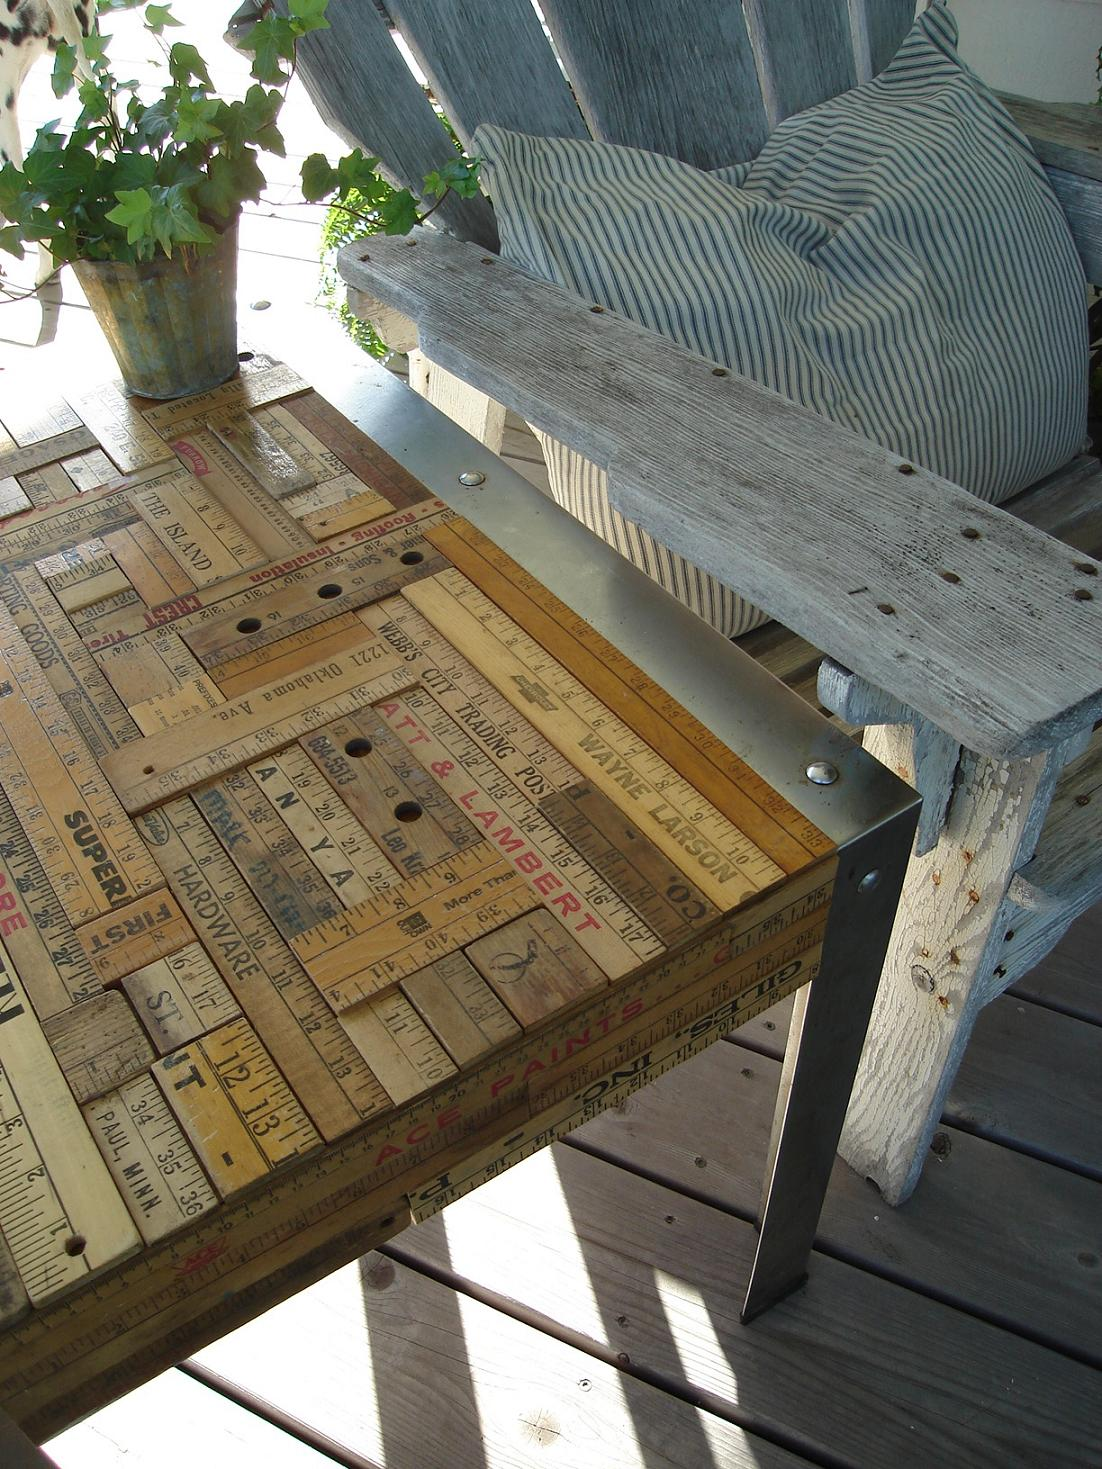 15 Creative and Functional Reuses of Rulers and Yardsticks